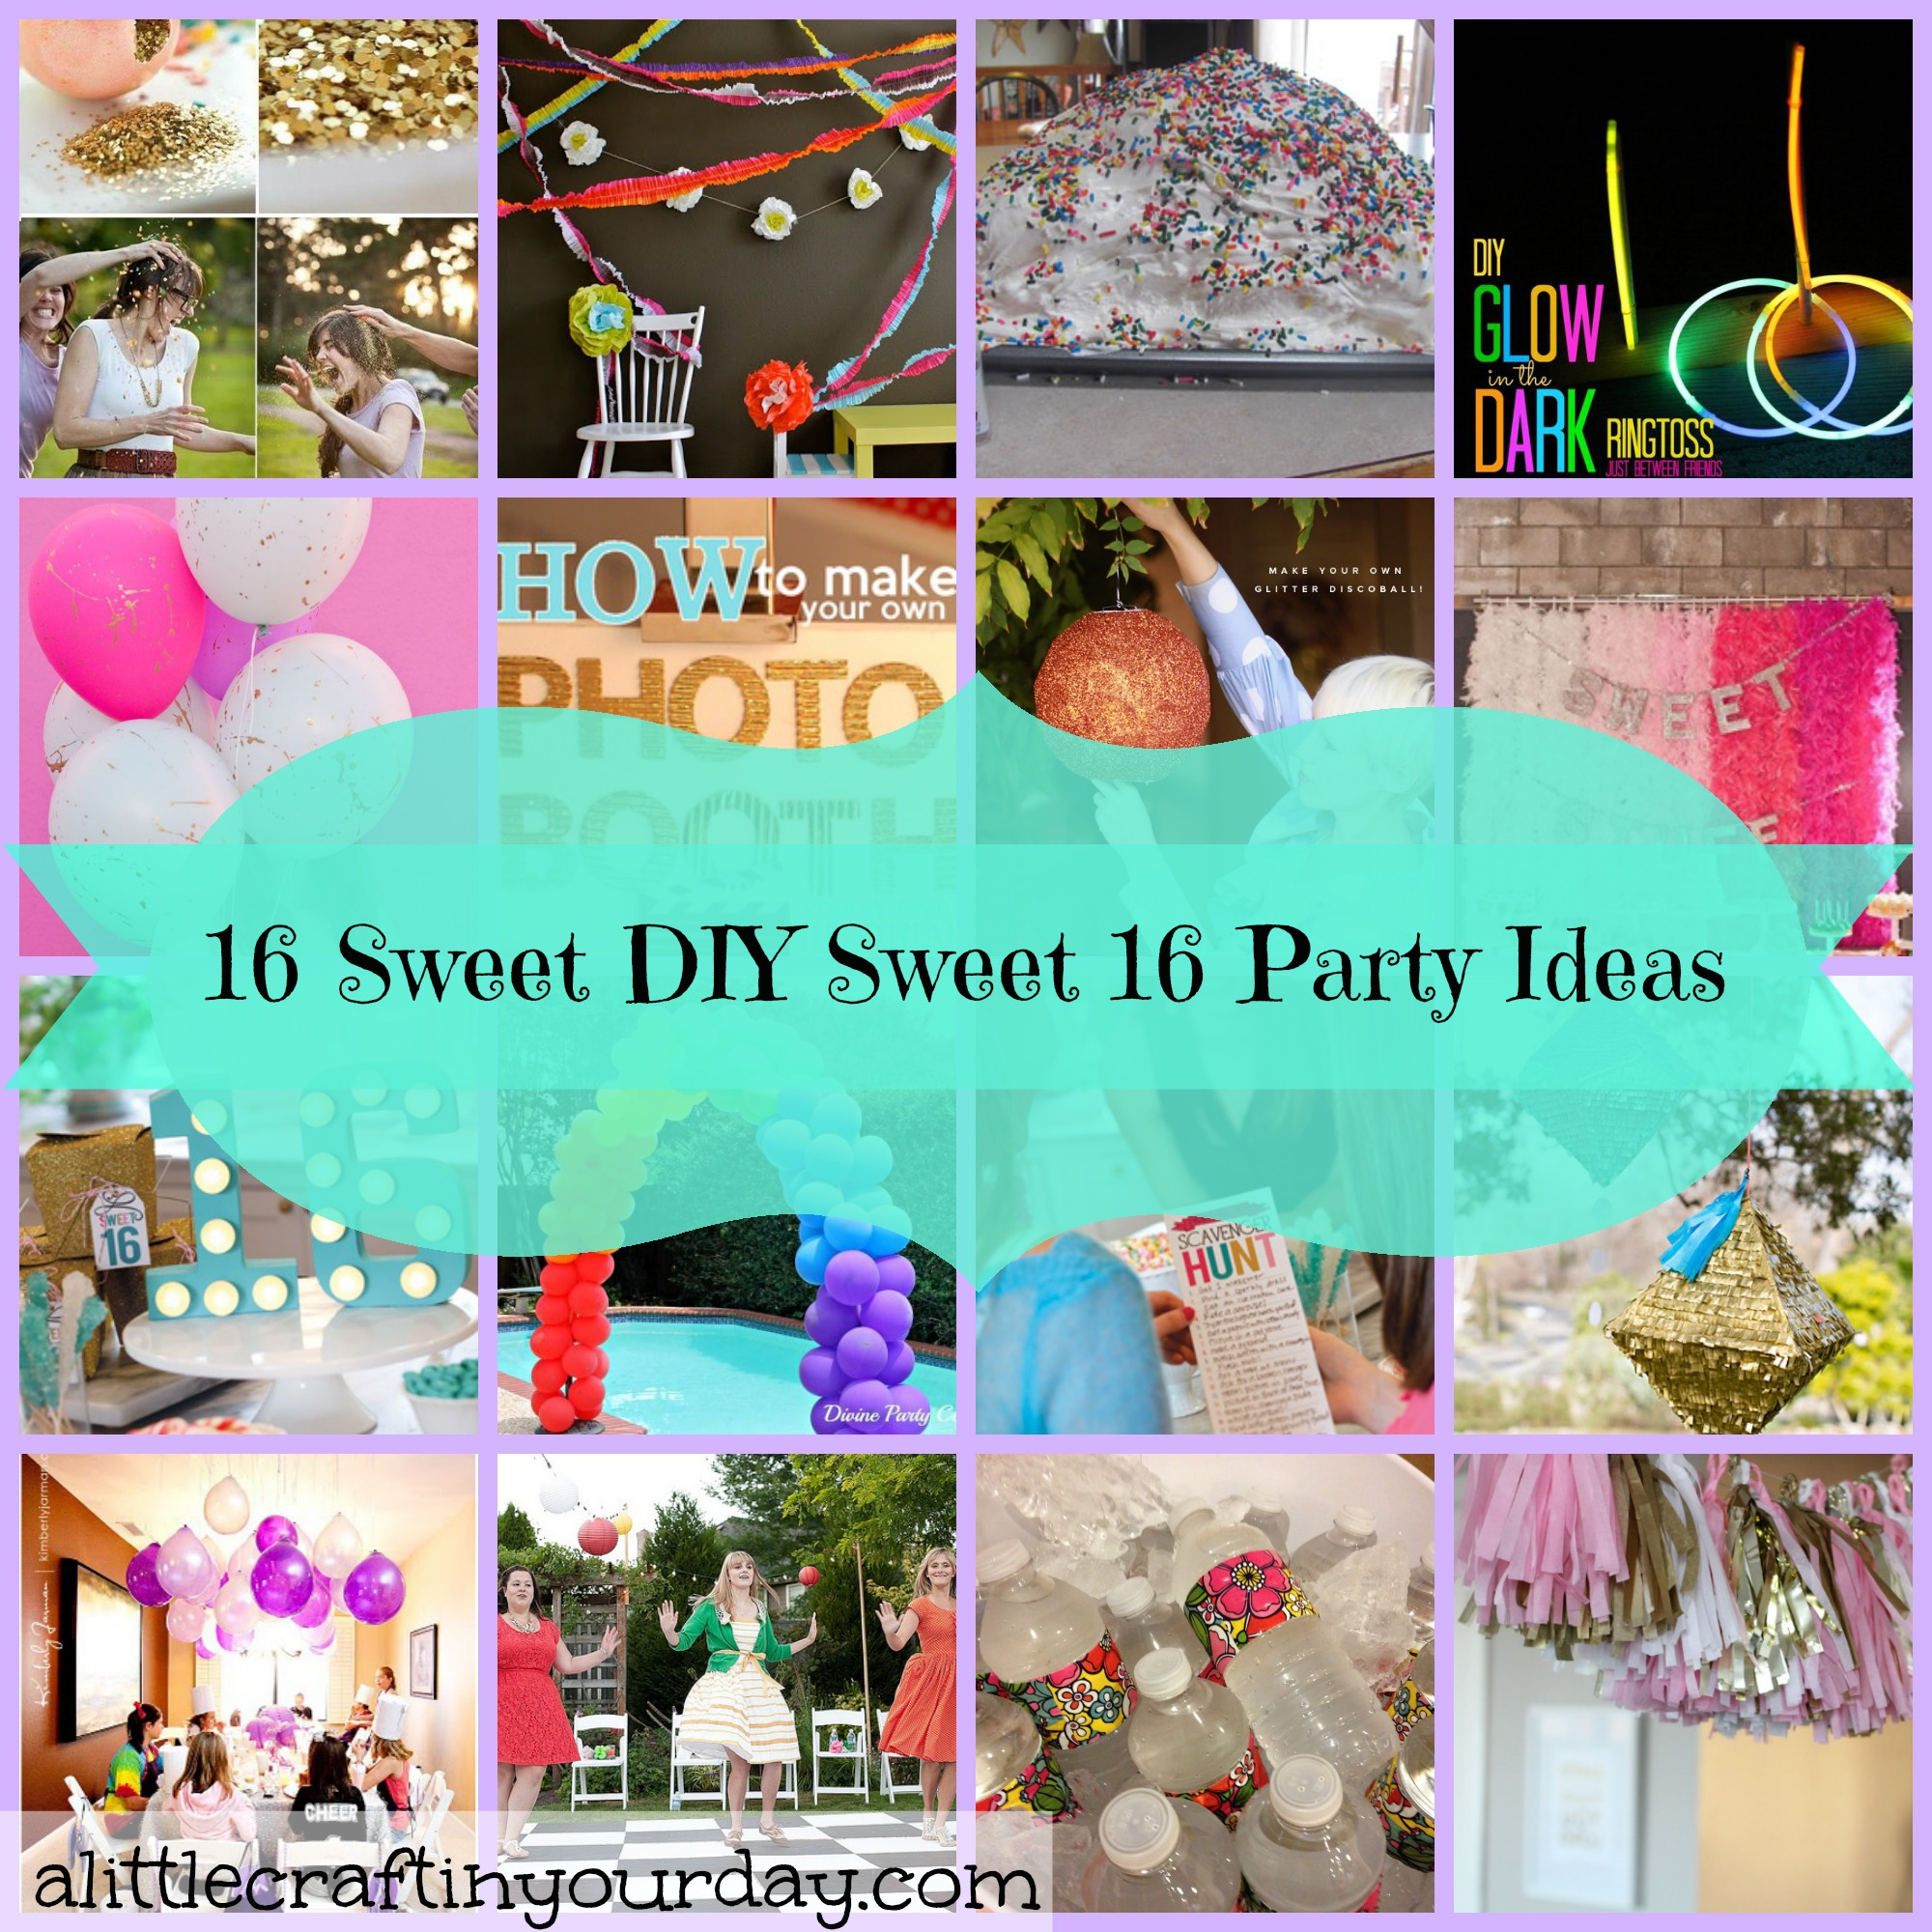 Charming Sweet 16 Decoration Ideas Home Part - 13: 9/30 | 16 Sweet DIY Sweet 16 Party Ideas. 16_Sweet_DIY_Sweet_16_Party_Ideas